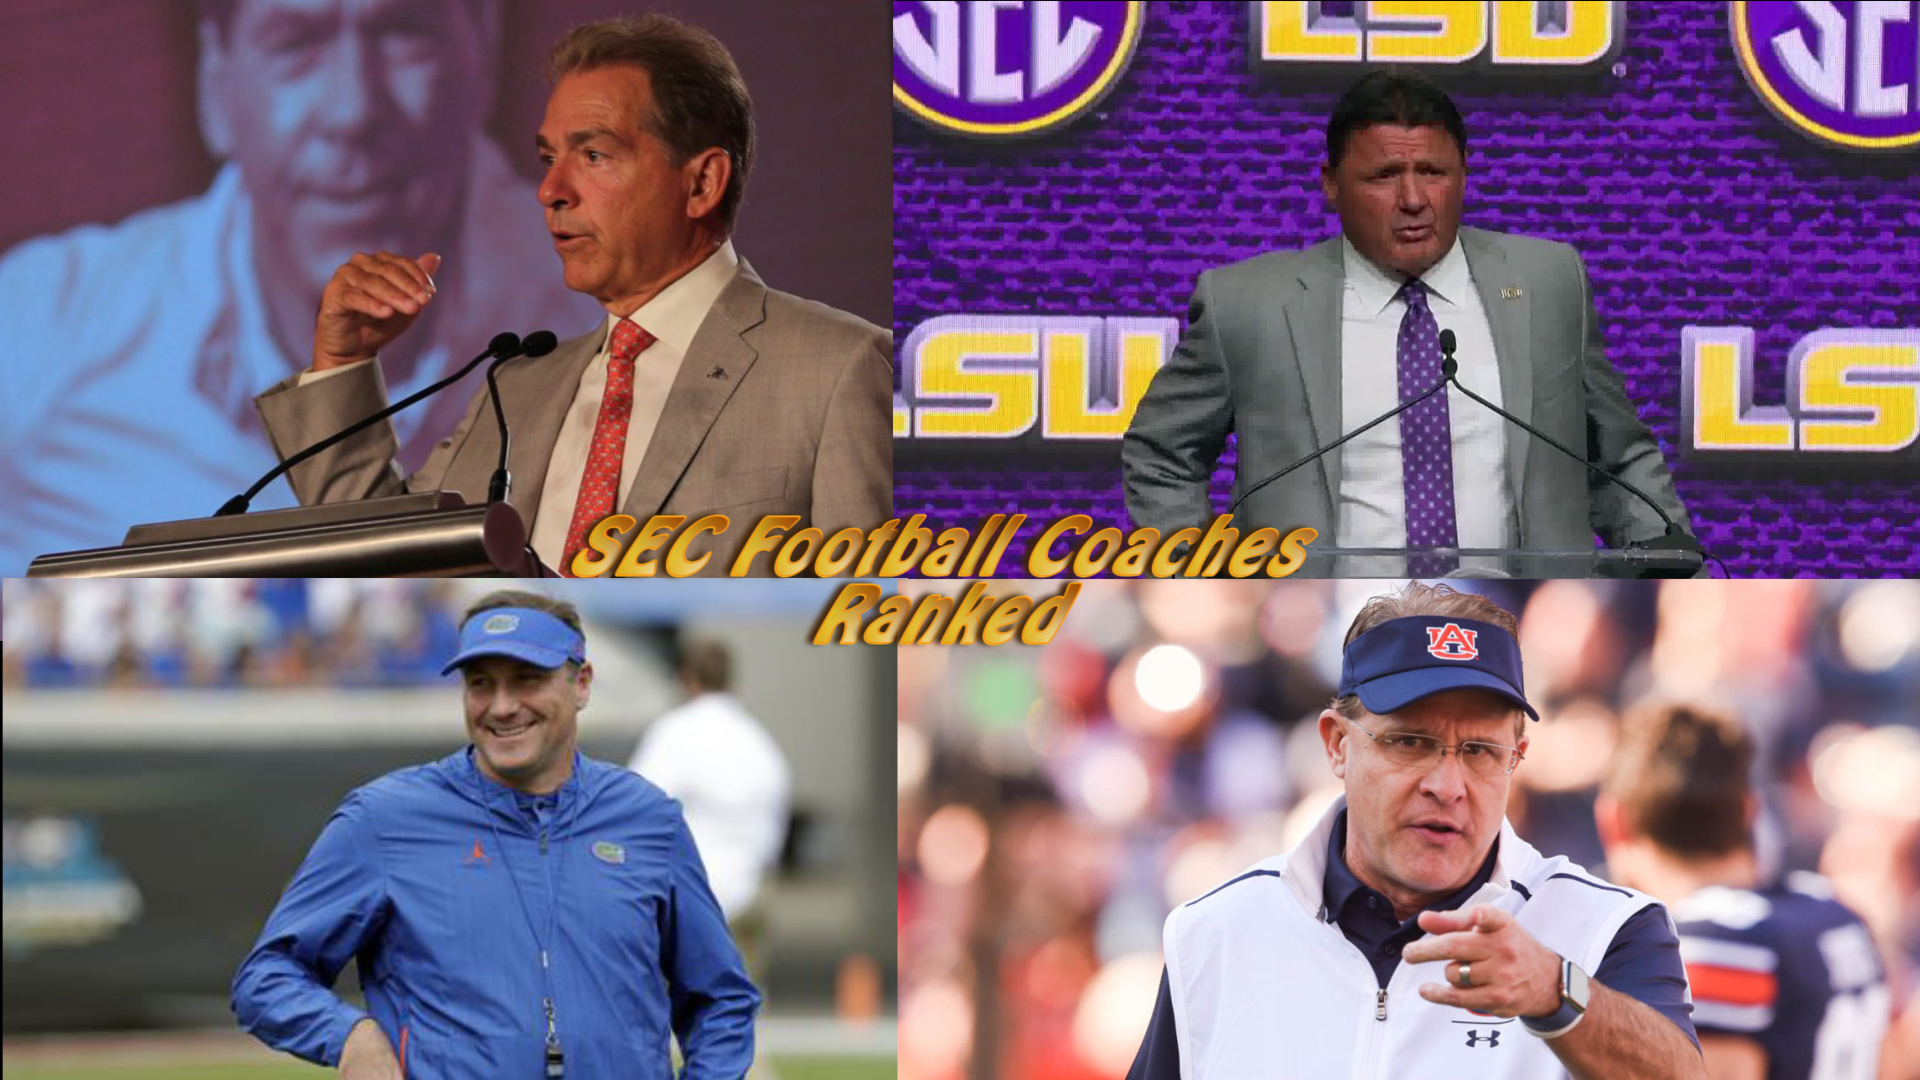 SEC football coaches ranked: 2020 edition